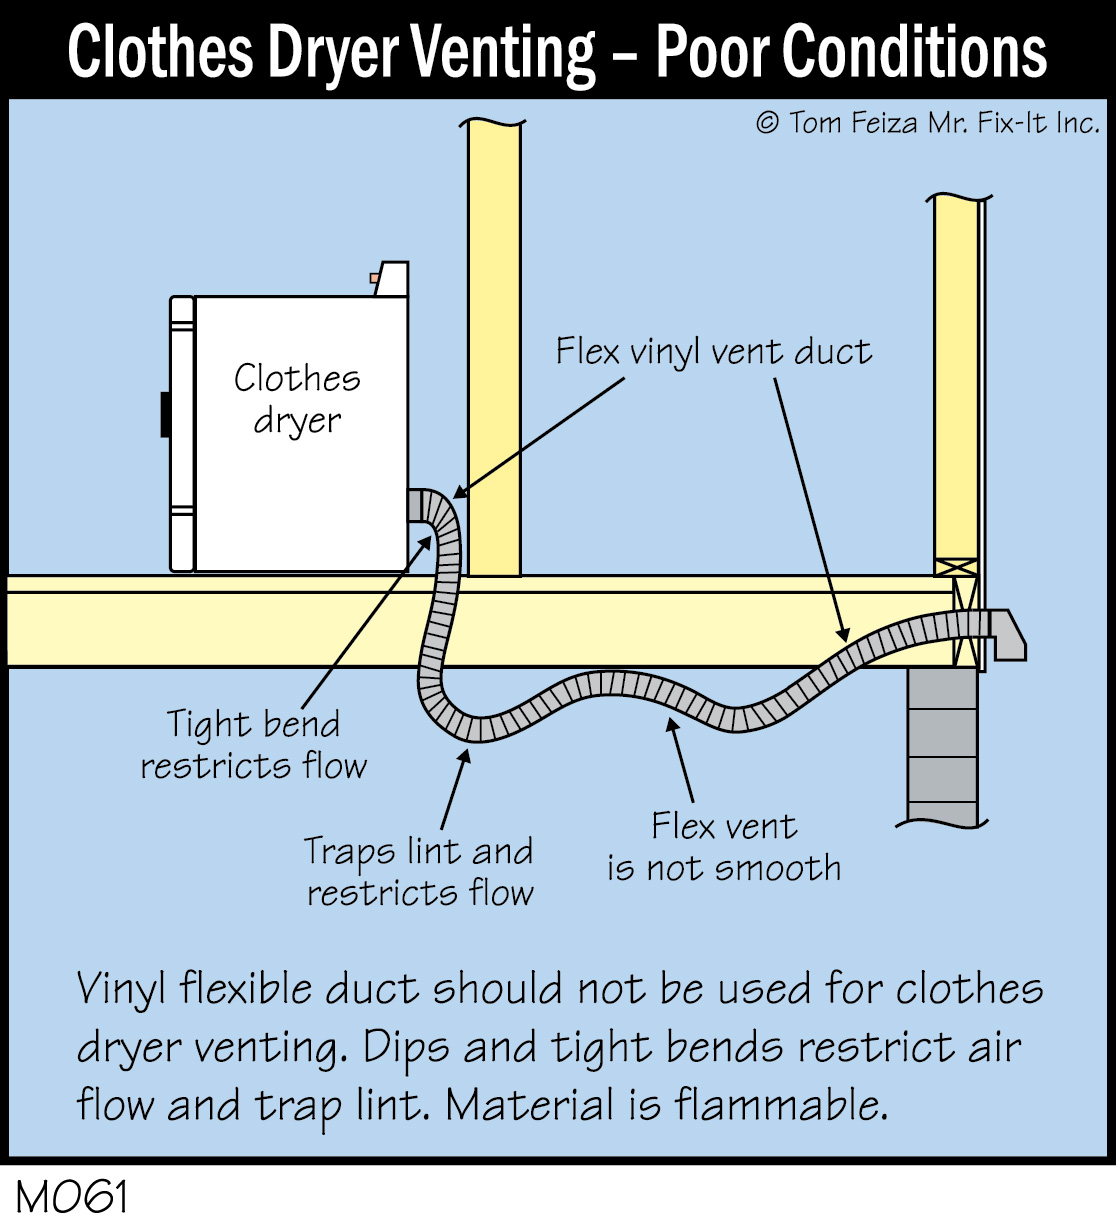 M061c Clothes Dryer Venting Poor Conditions 300dpi